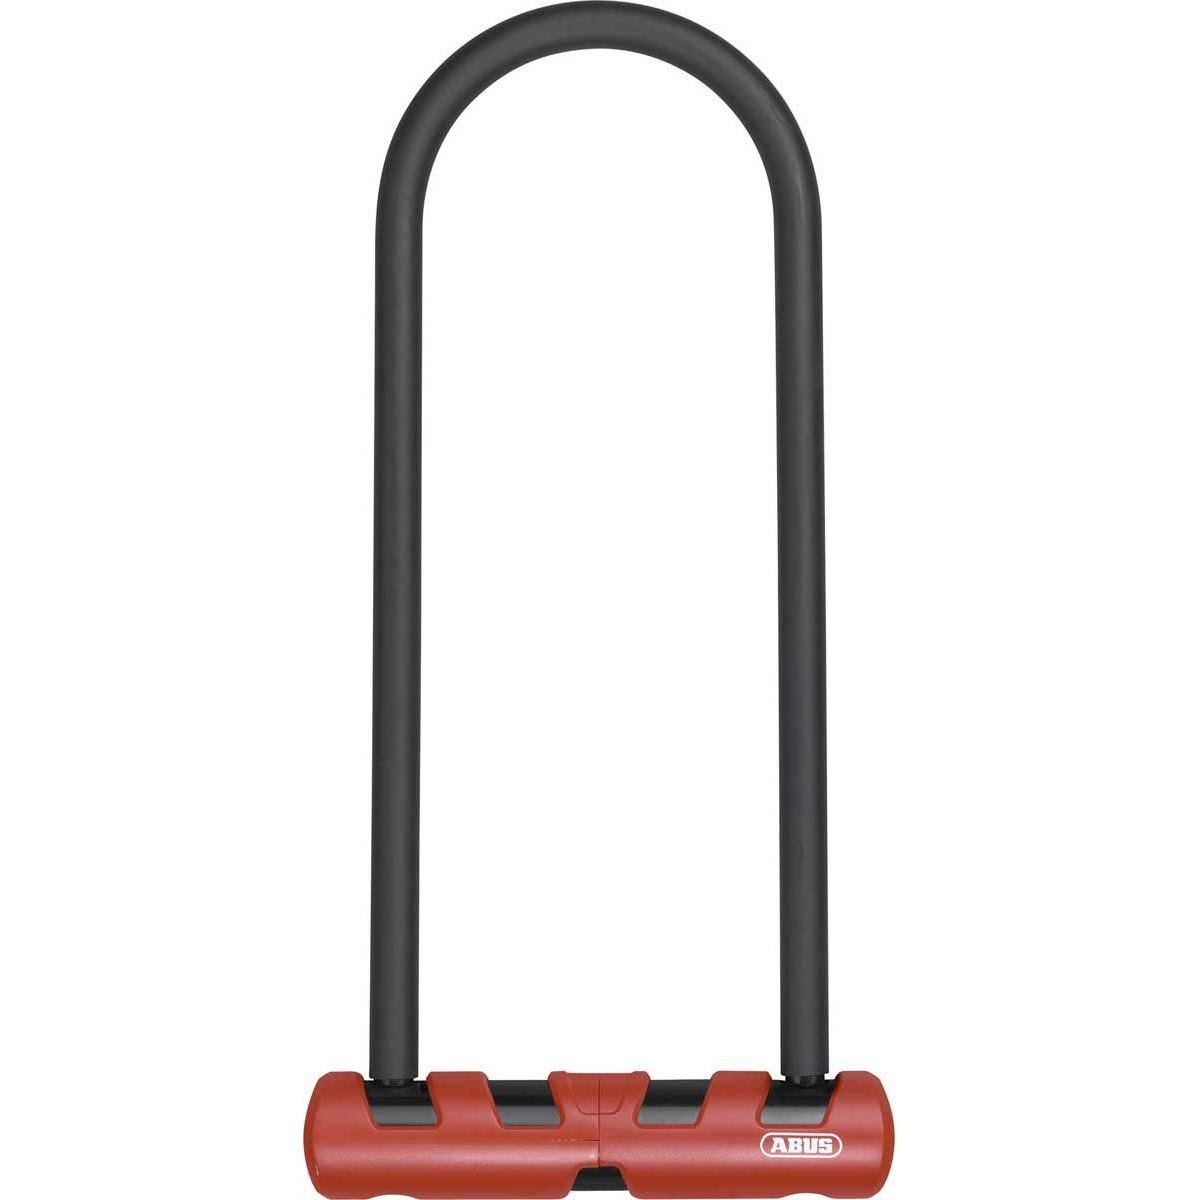 Abus Ultimate 420 U-Lock Black/Orange, 9in